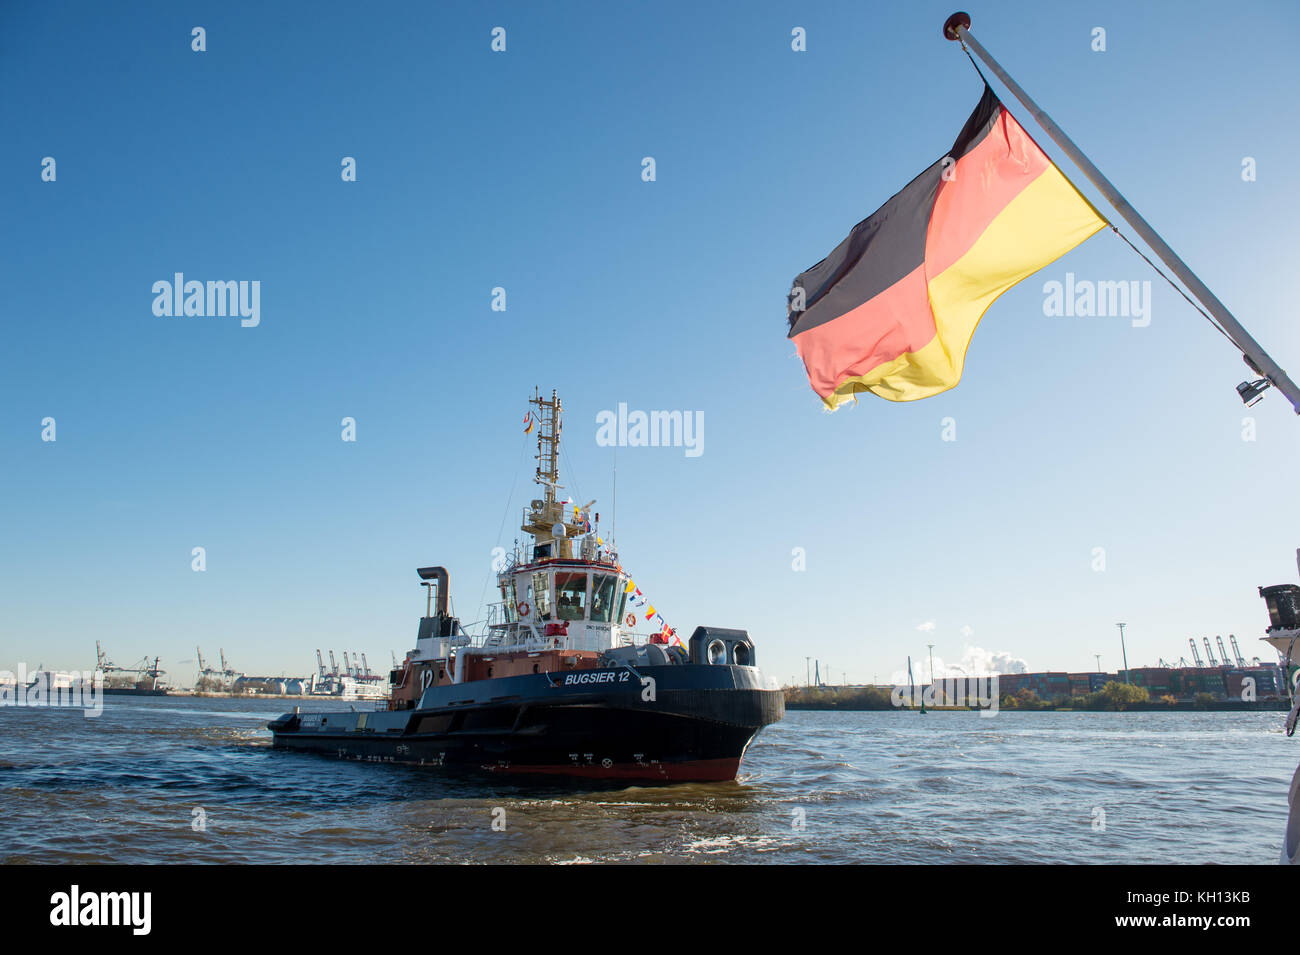 Hamburg, Germany. 13th Nov, 2017. The tug boat 'Bugsier 12' sailing on the river Elbe in Hamburg, Germany, - Stock Image